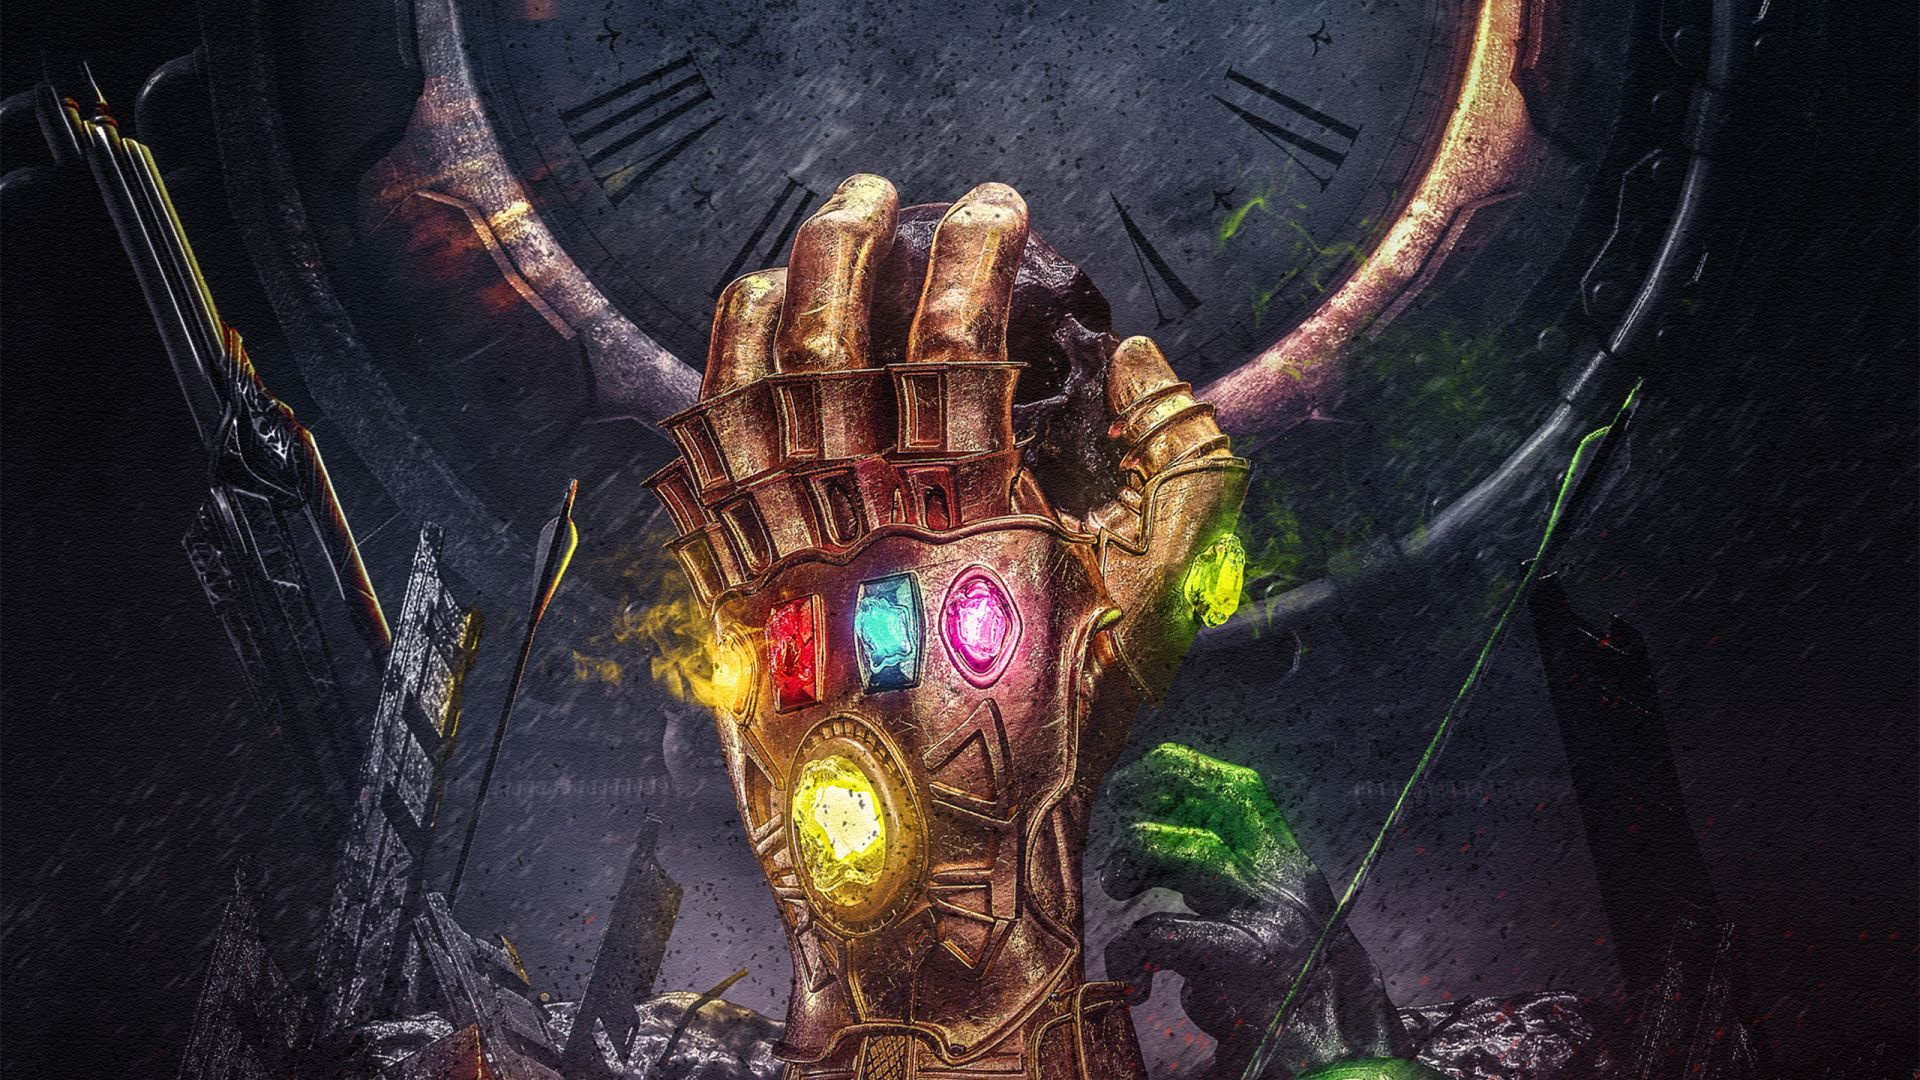 Download Wallpapers Of Infinity Gauntlet Thanos Infinity Stones Avengers Infinity War Marvel Comics Hd Cr Art Wallpaper Creative Graphics Hero Wallpaper